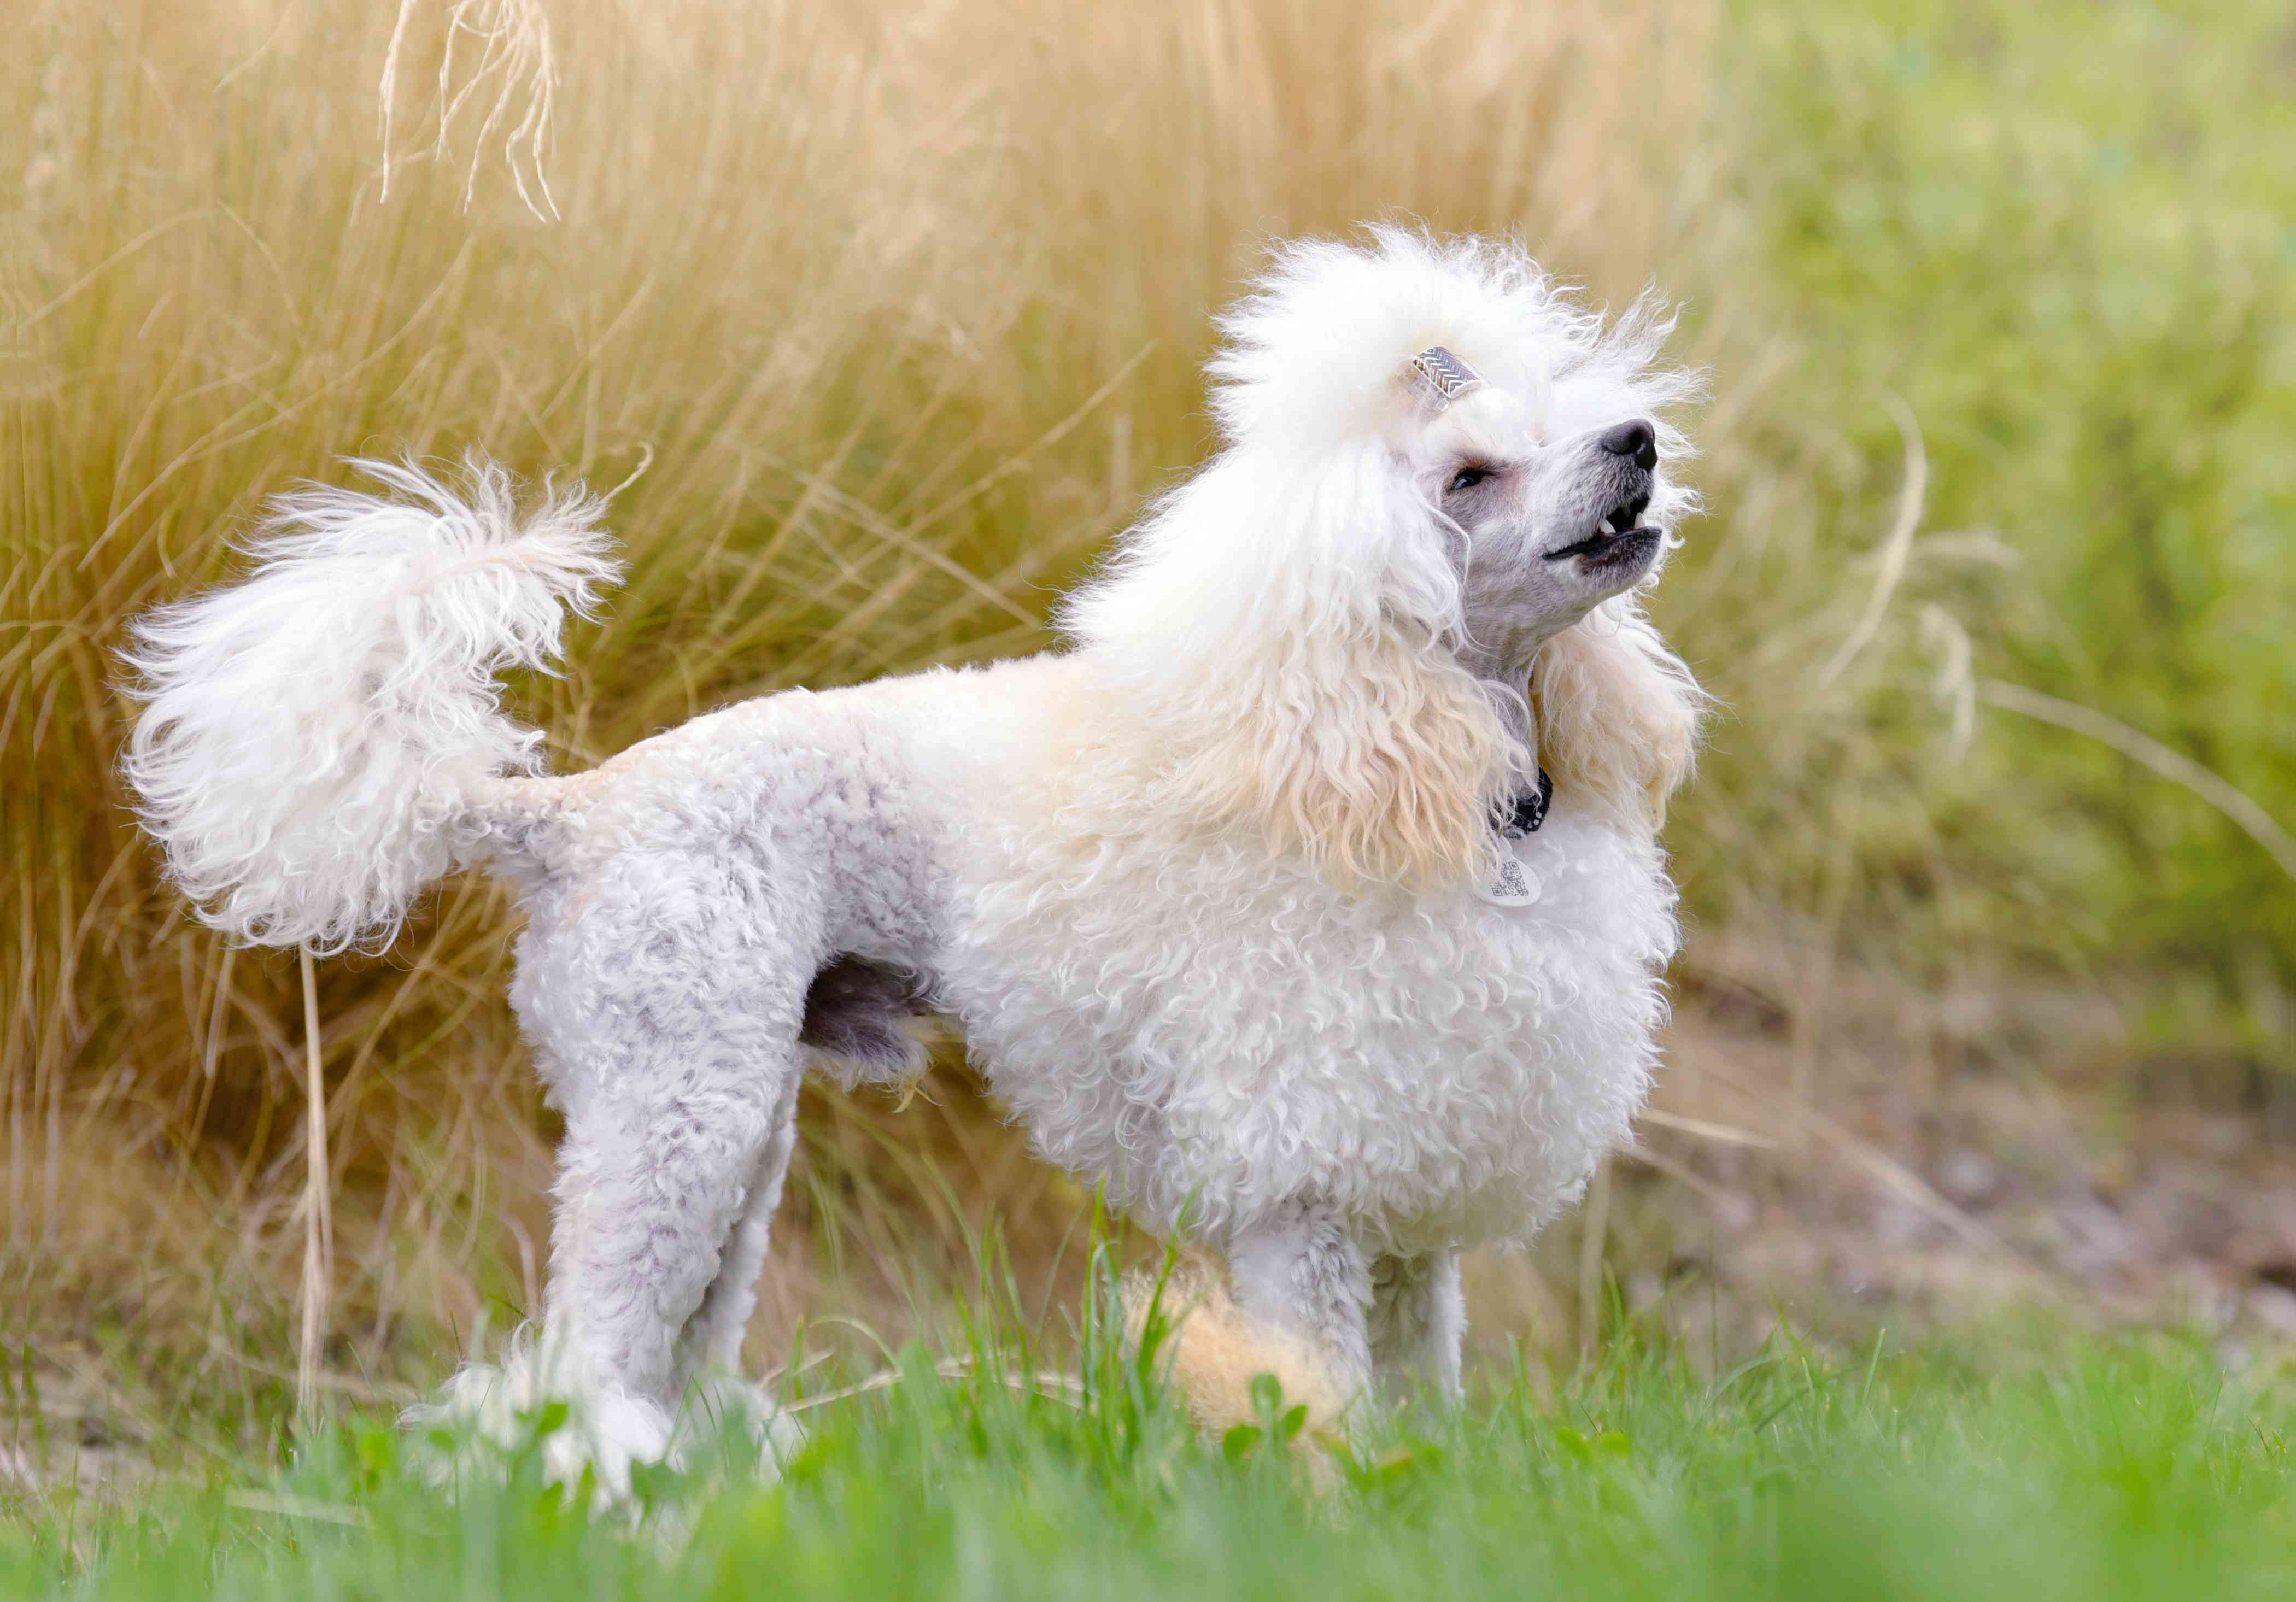 Curly-haired and manicured white poodle barking in front of tall grasses